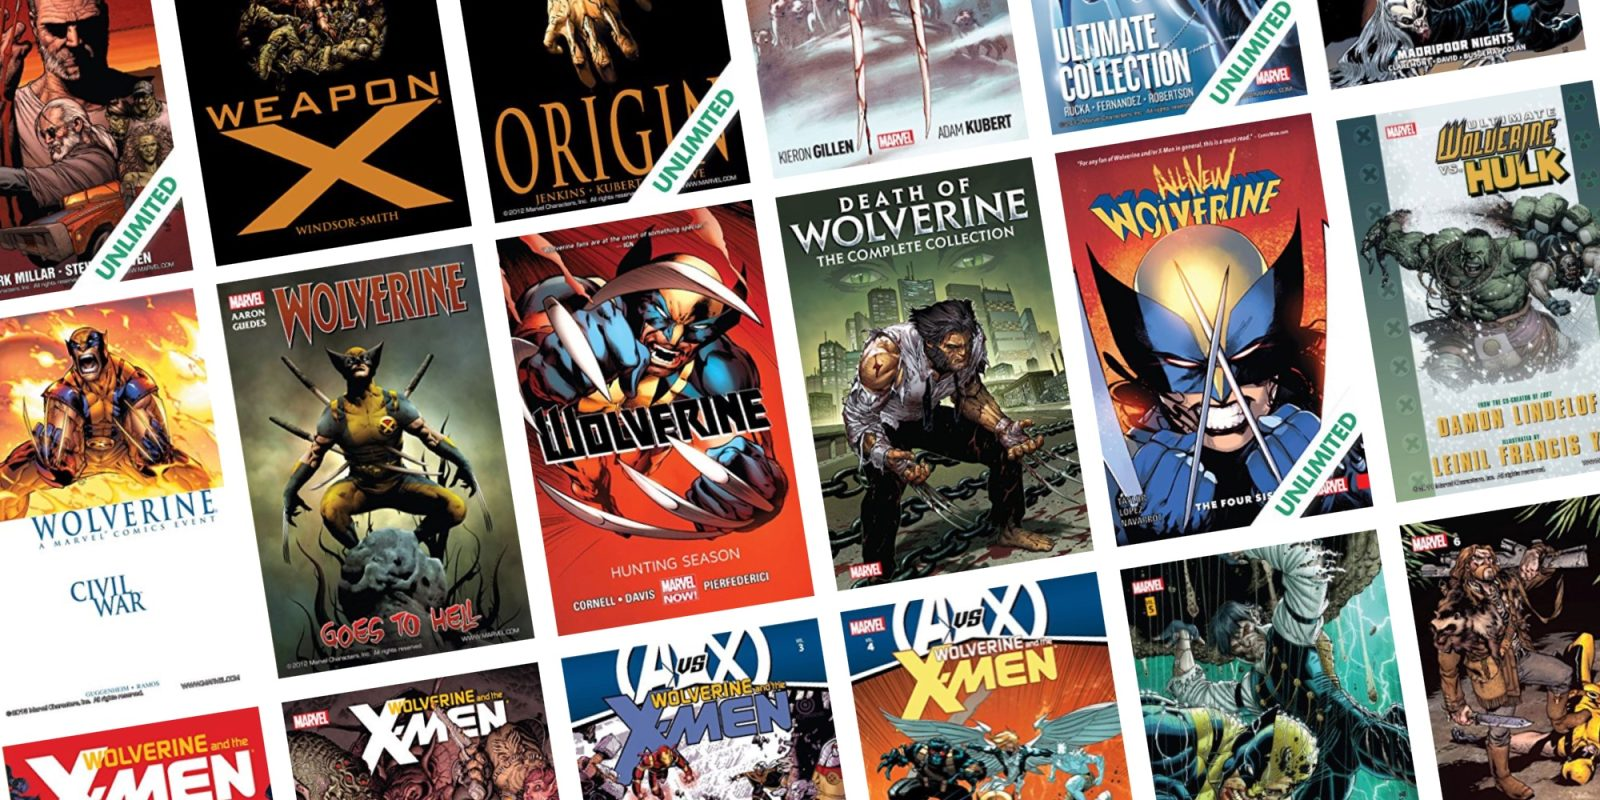 X-Men fans can save up to 67% off a selection of Wolverine digital releases at ComiXology from $1